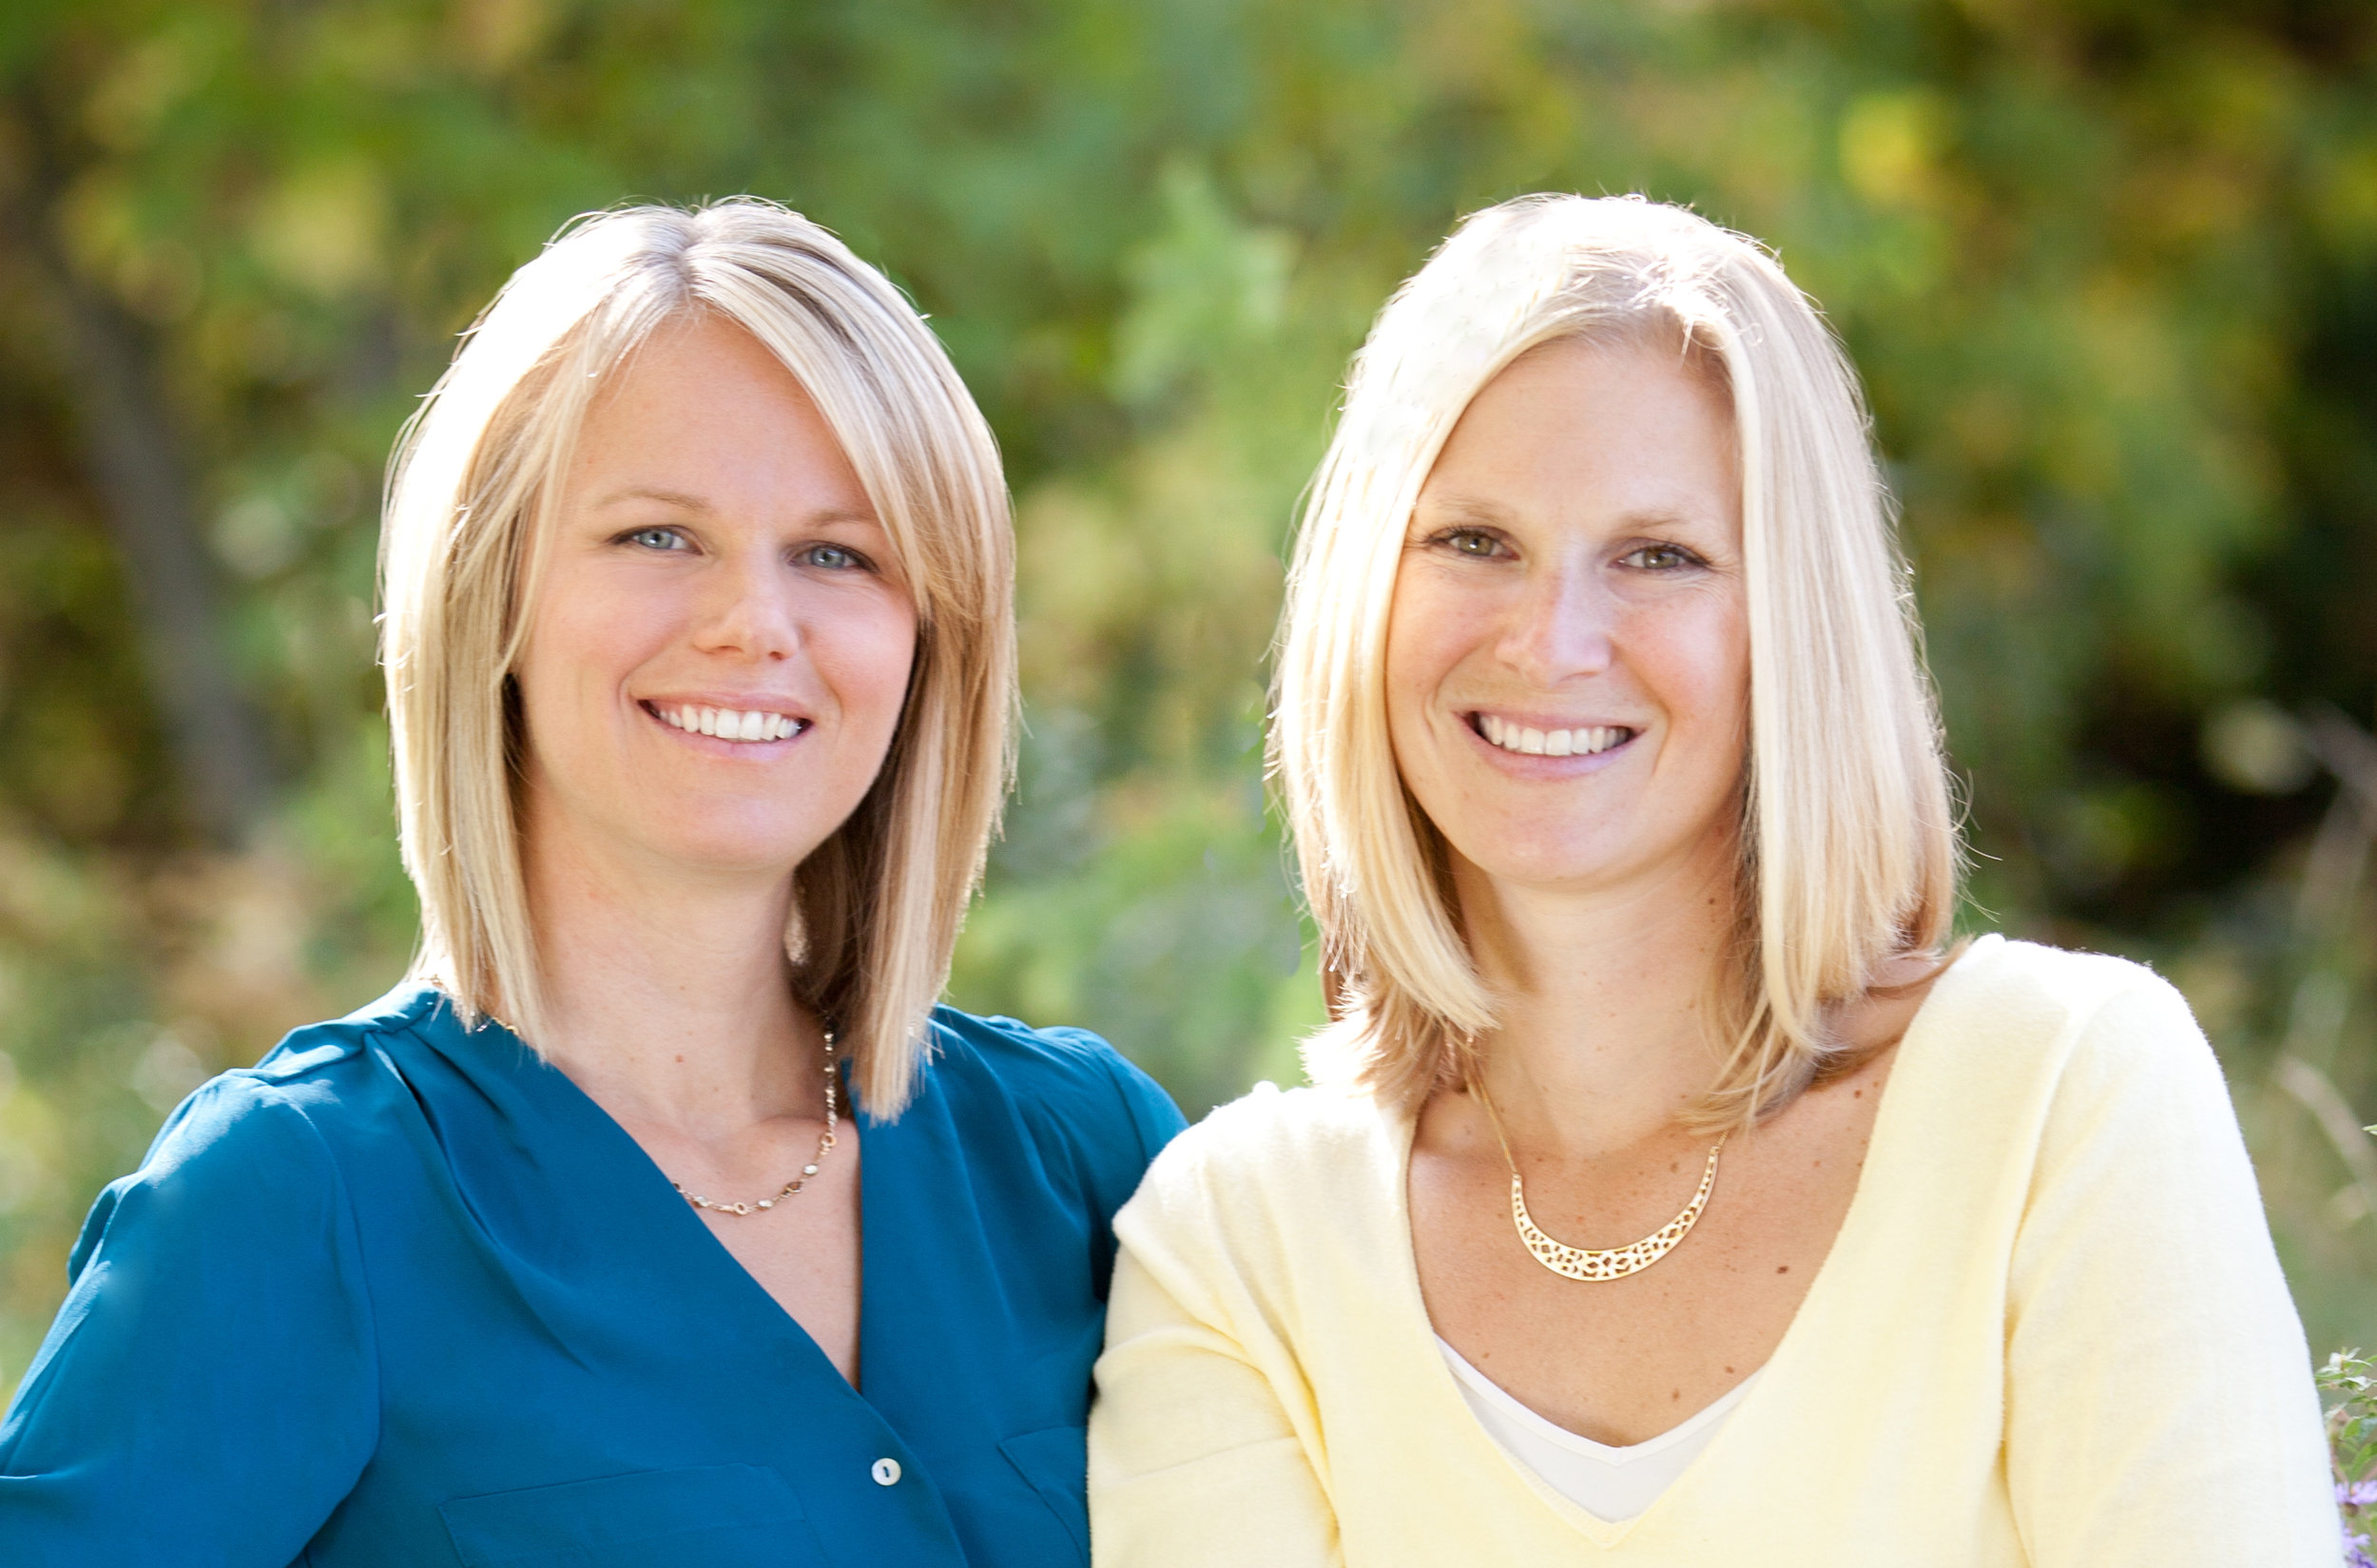 Dr. Dana Marshall (left) and Dr. Susan Joyce (right) are the Naturopathic Doctors of Healthy Foundations Naturopathic Clinic, downtown Peterborough.